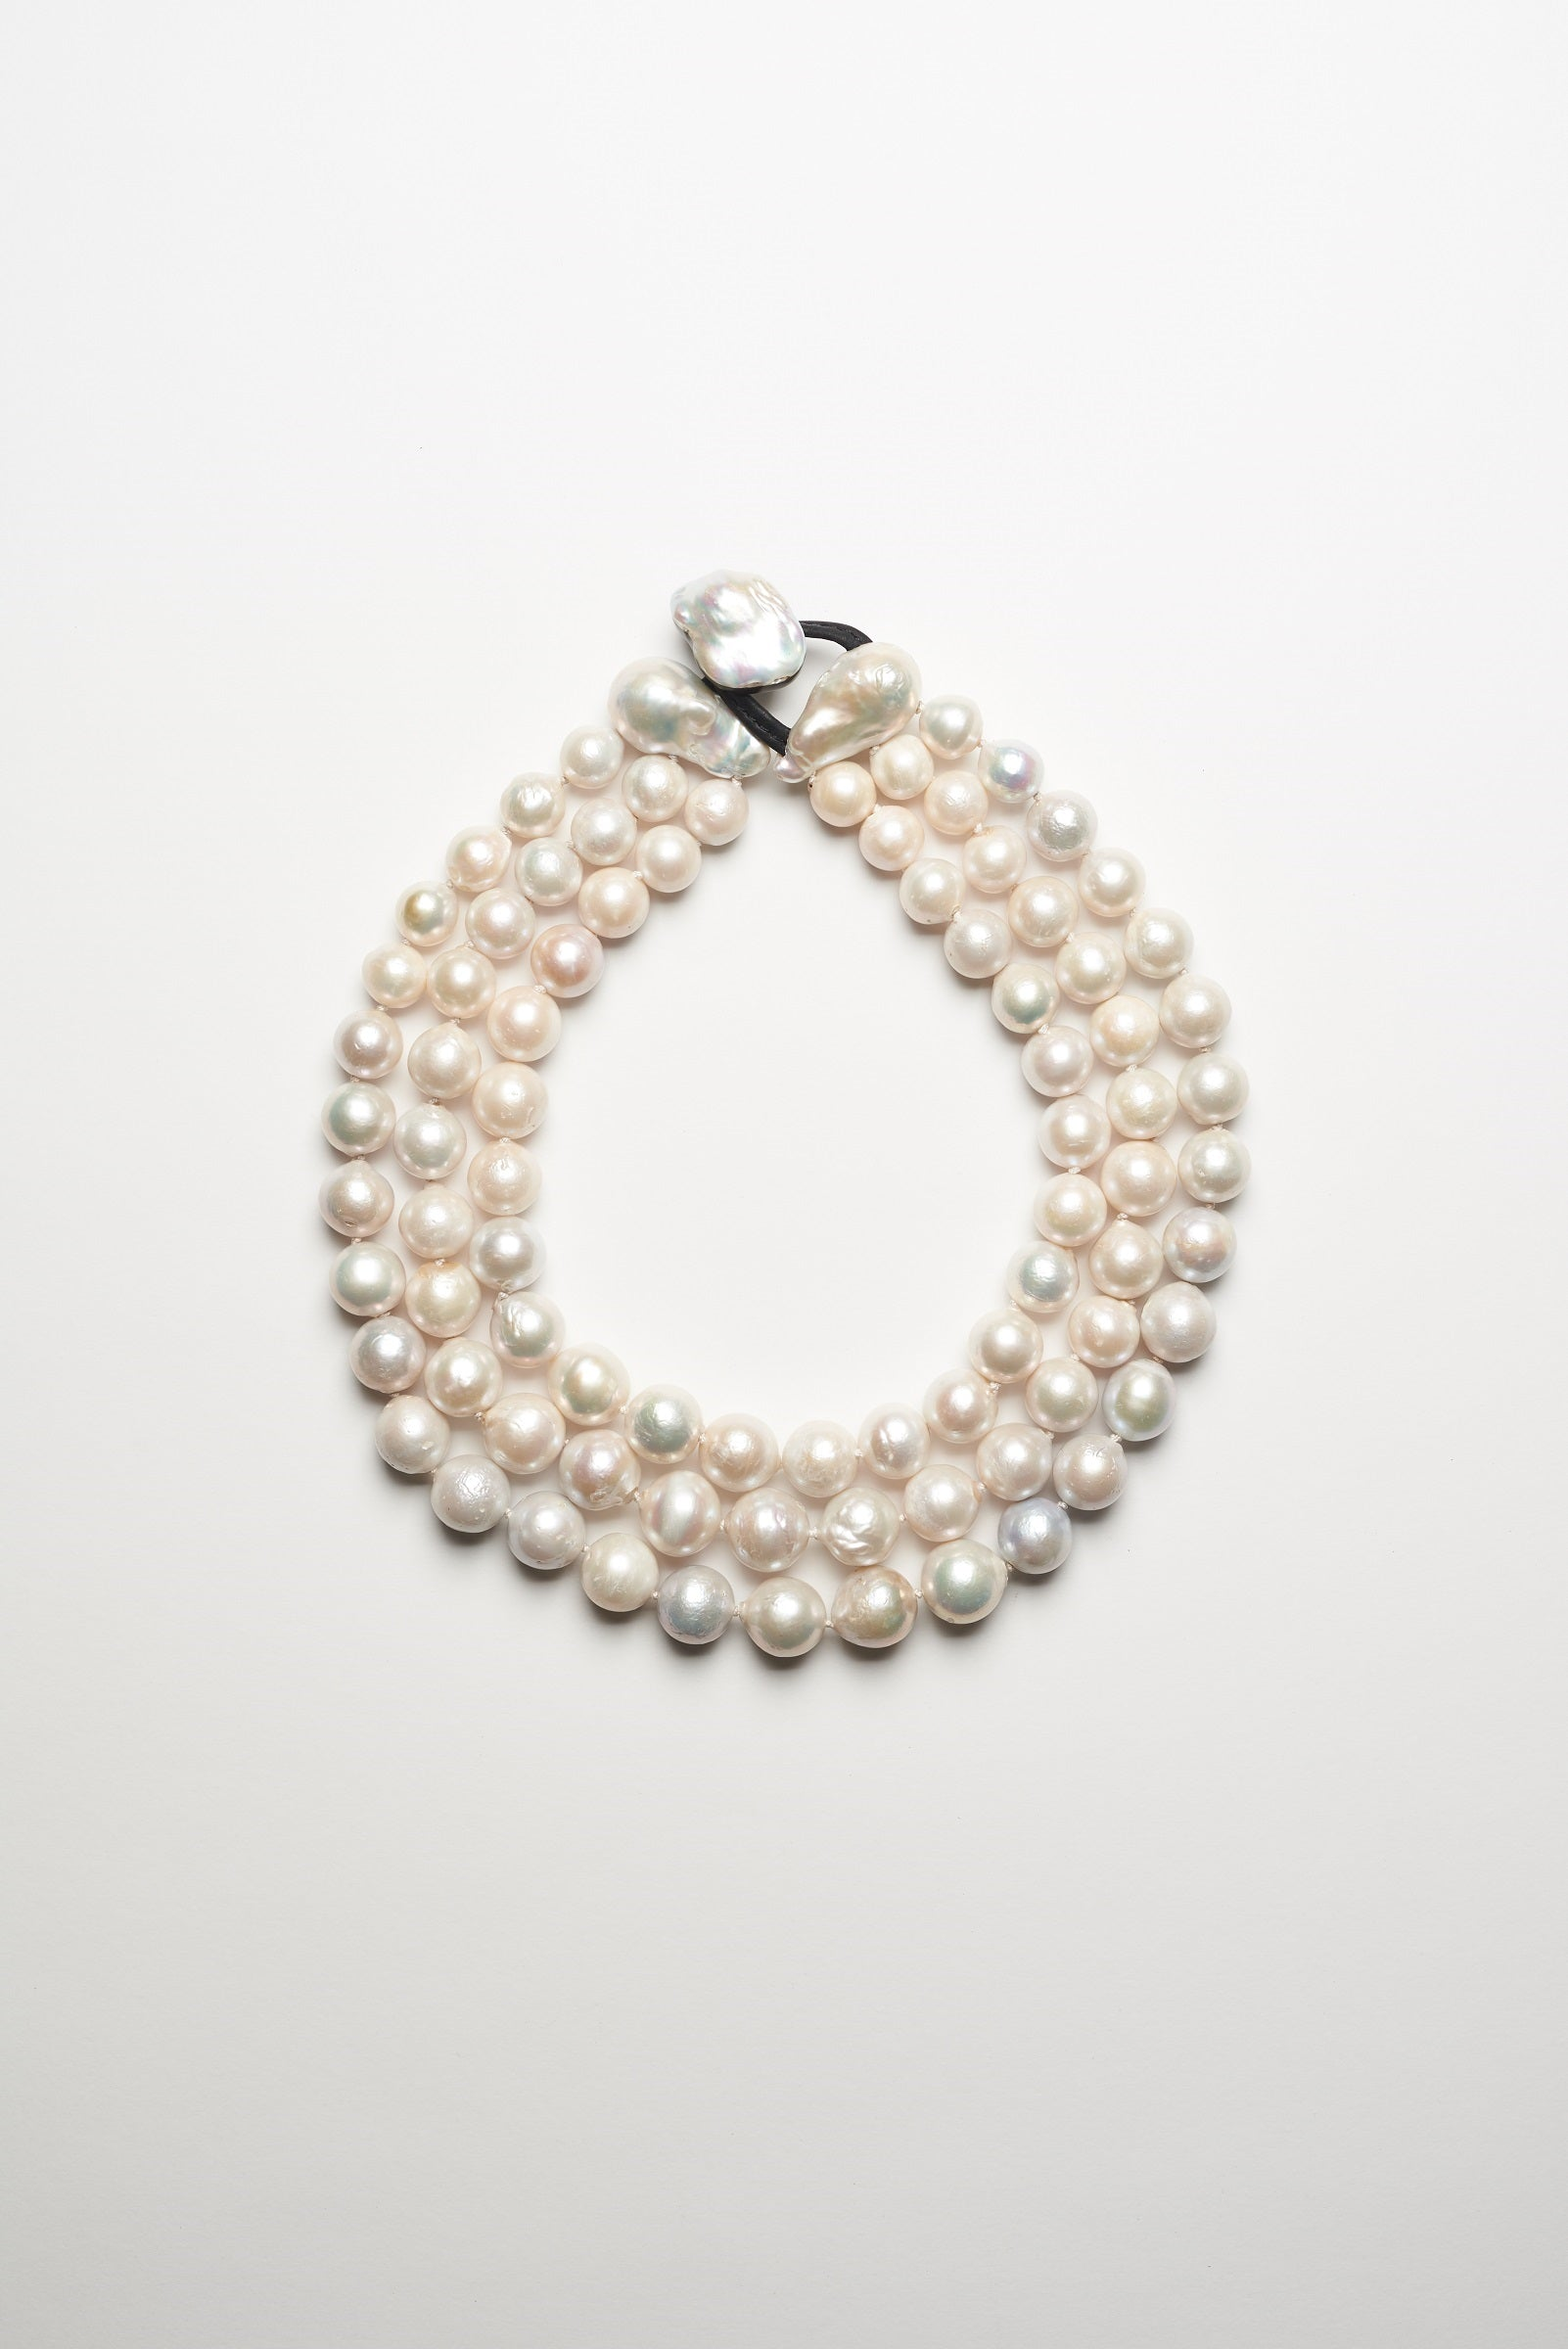 Necklace in fresh water pearls - 3 rows